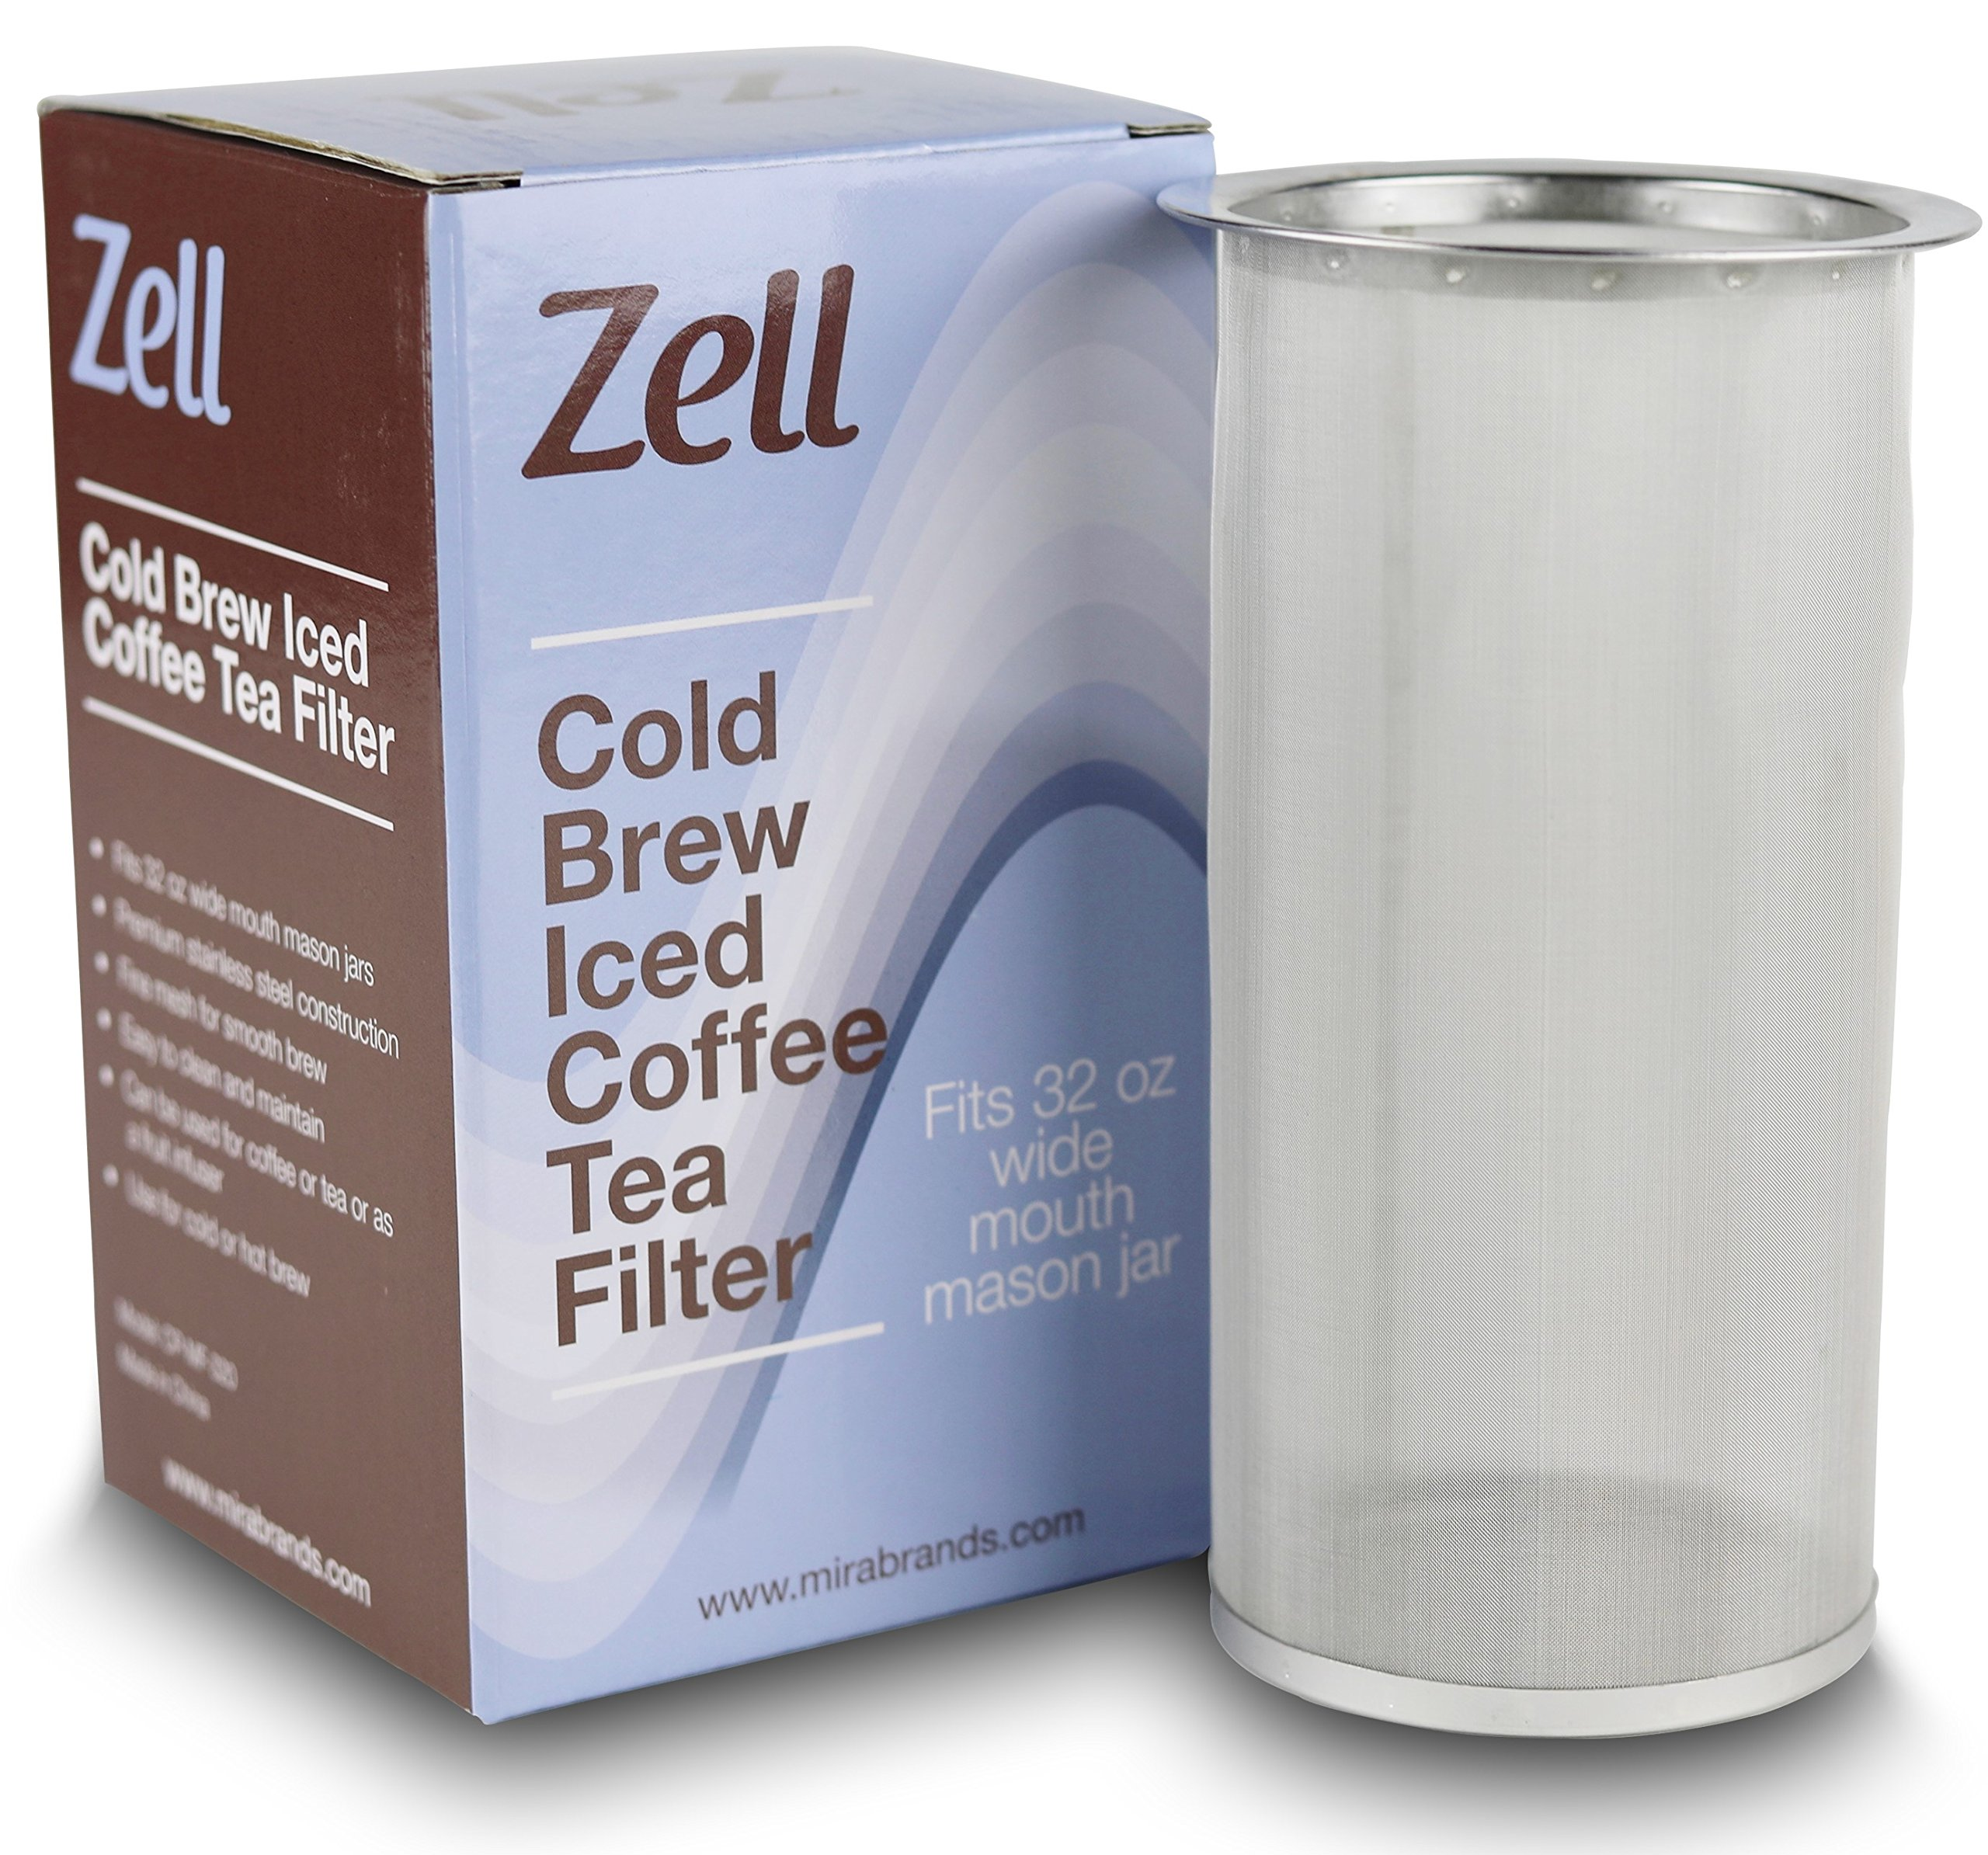 Zell Cold Brew Coffee Maker, Iced Coffee & Tea Maker Infuser for Mason Jars | Durable Fine Mesh Stainless Steel Coffee Maker Filter | 32 Oz (1 Quart)